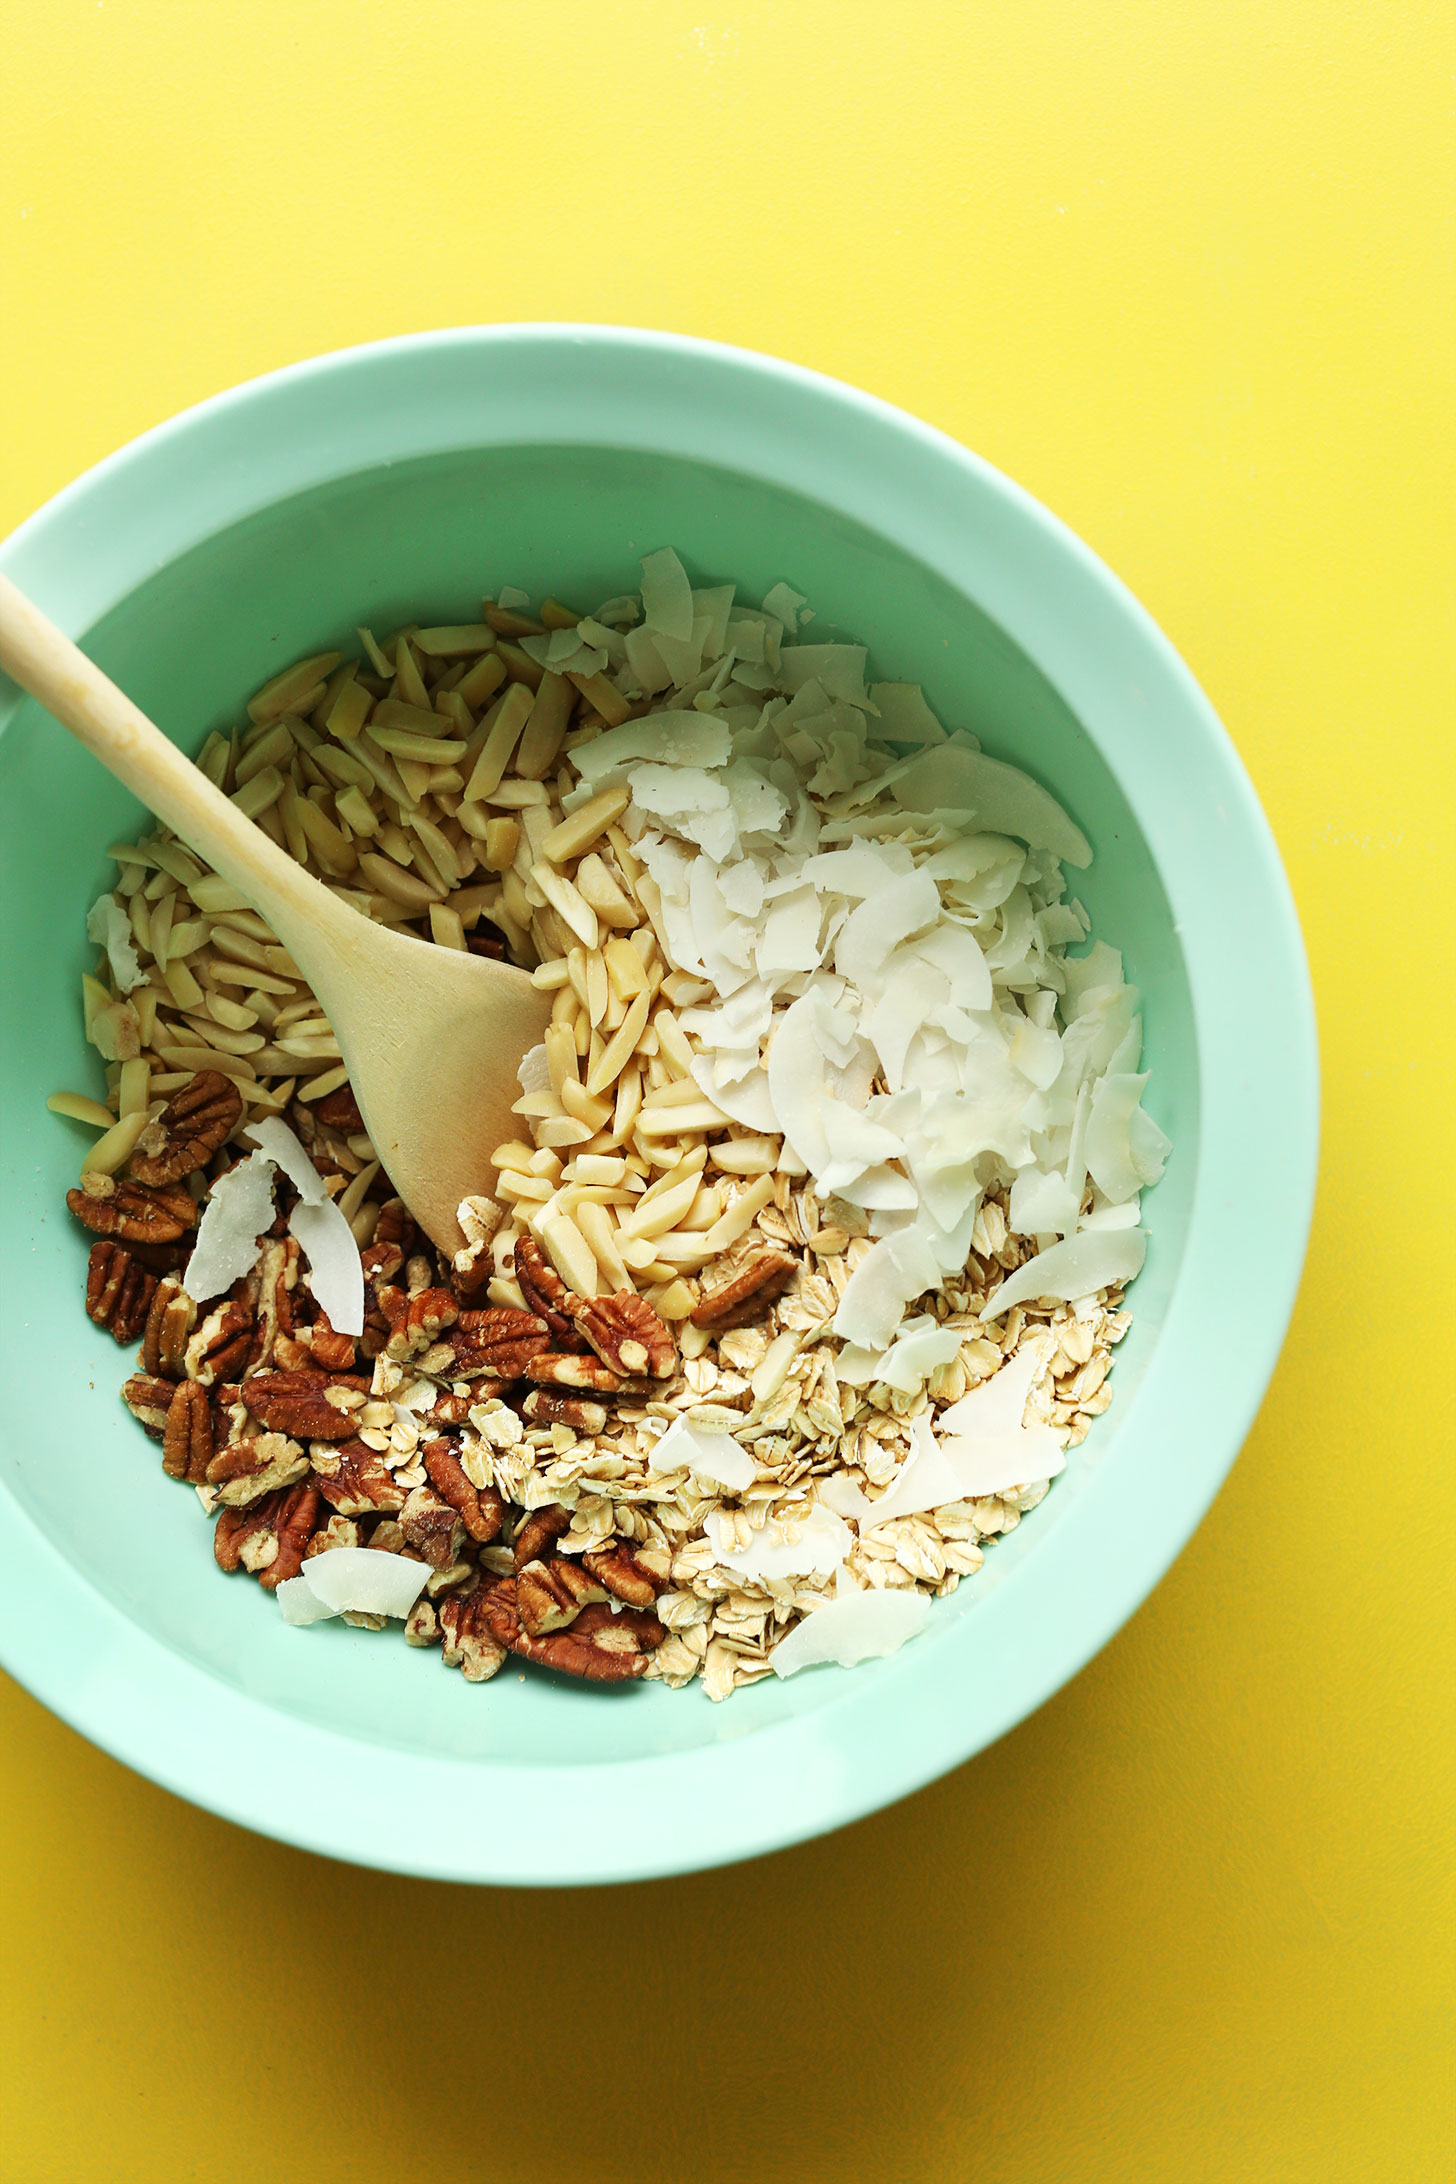 Mixing bowl with oats, nuts, and coconut for making gluten-free naturally-sweetened granola